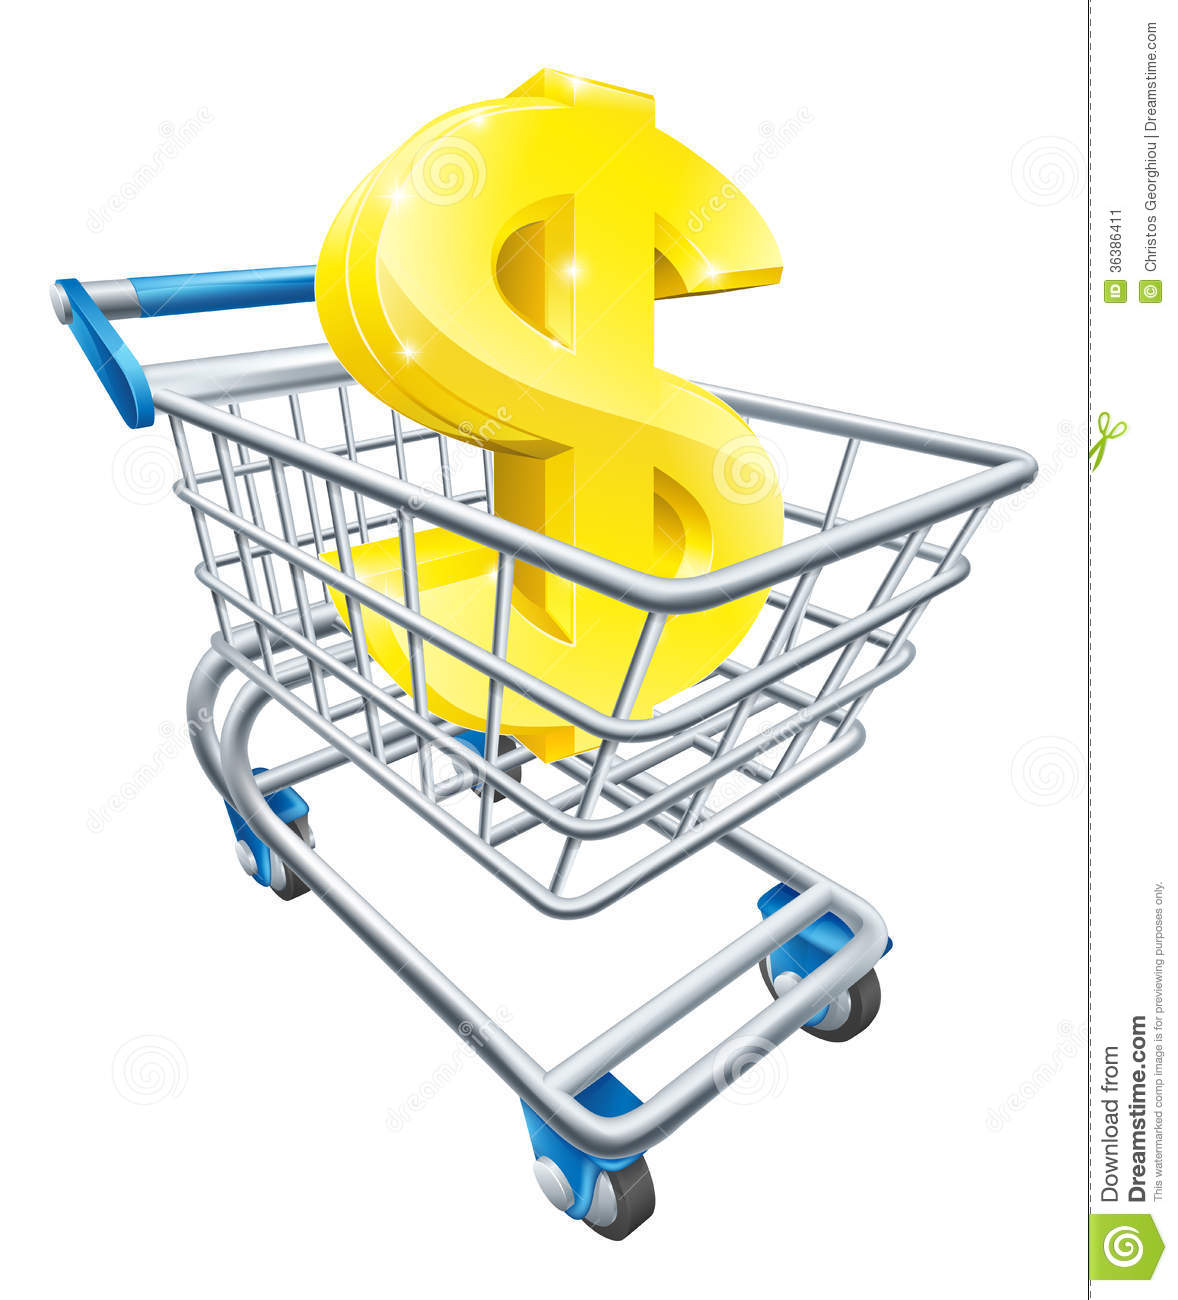 dollar money trolley concept stock vector illustration of rh dreamstime com Store Clip Art Grocery Shopping Clip Art